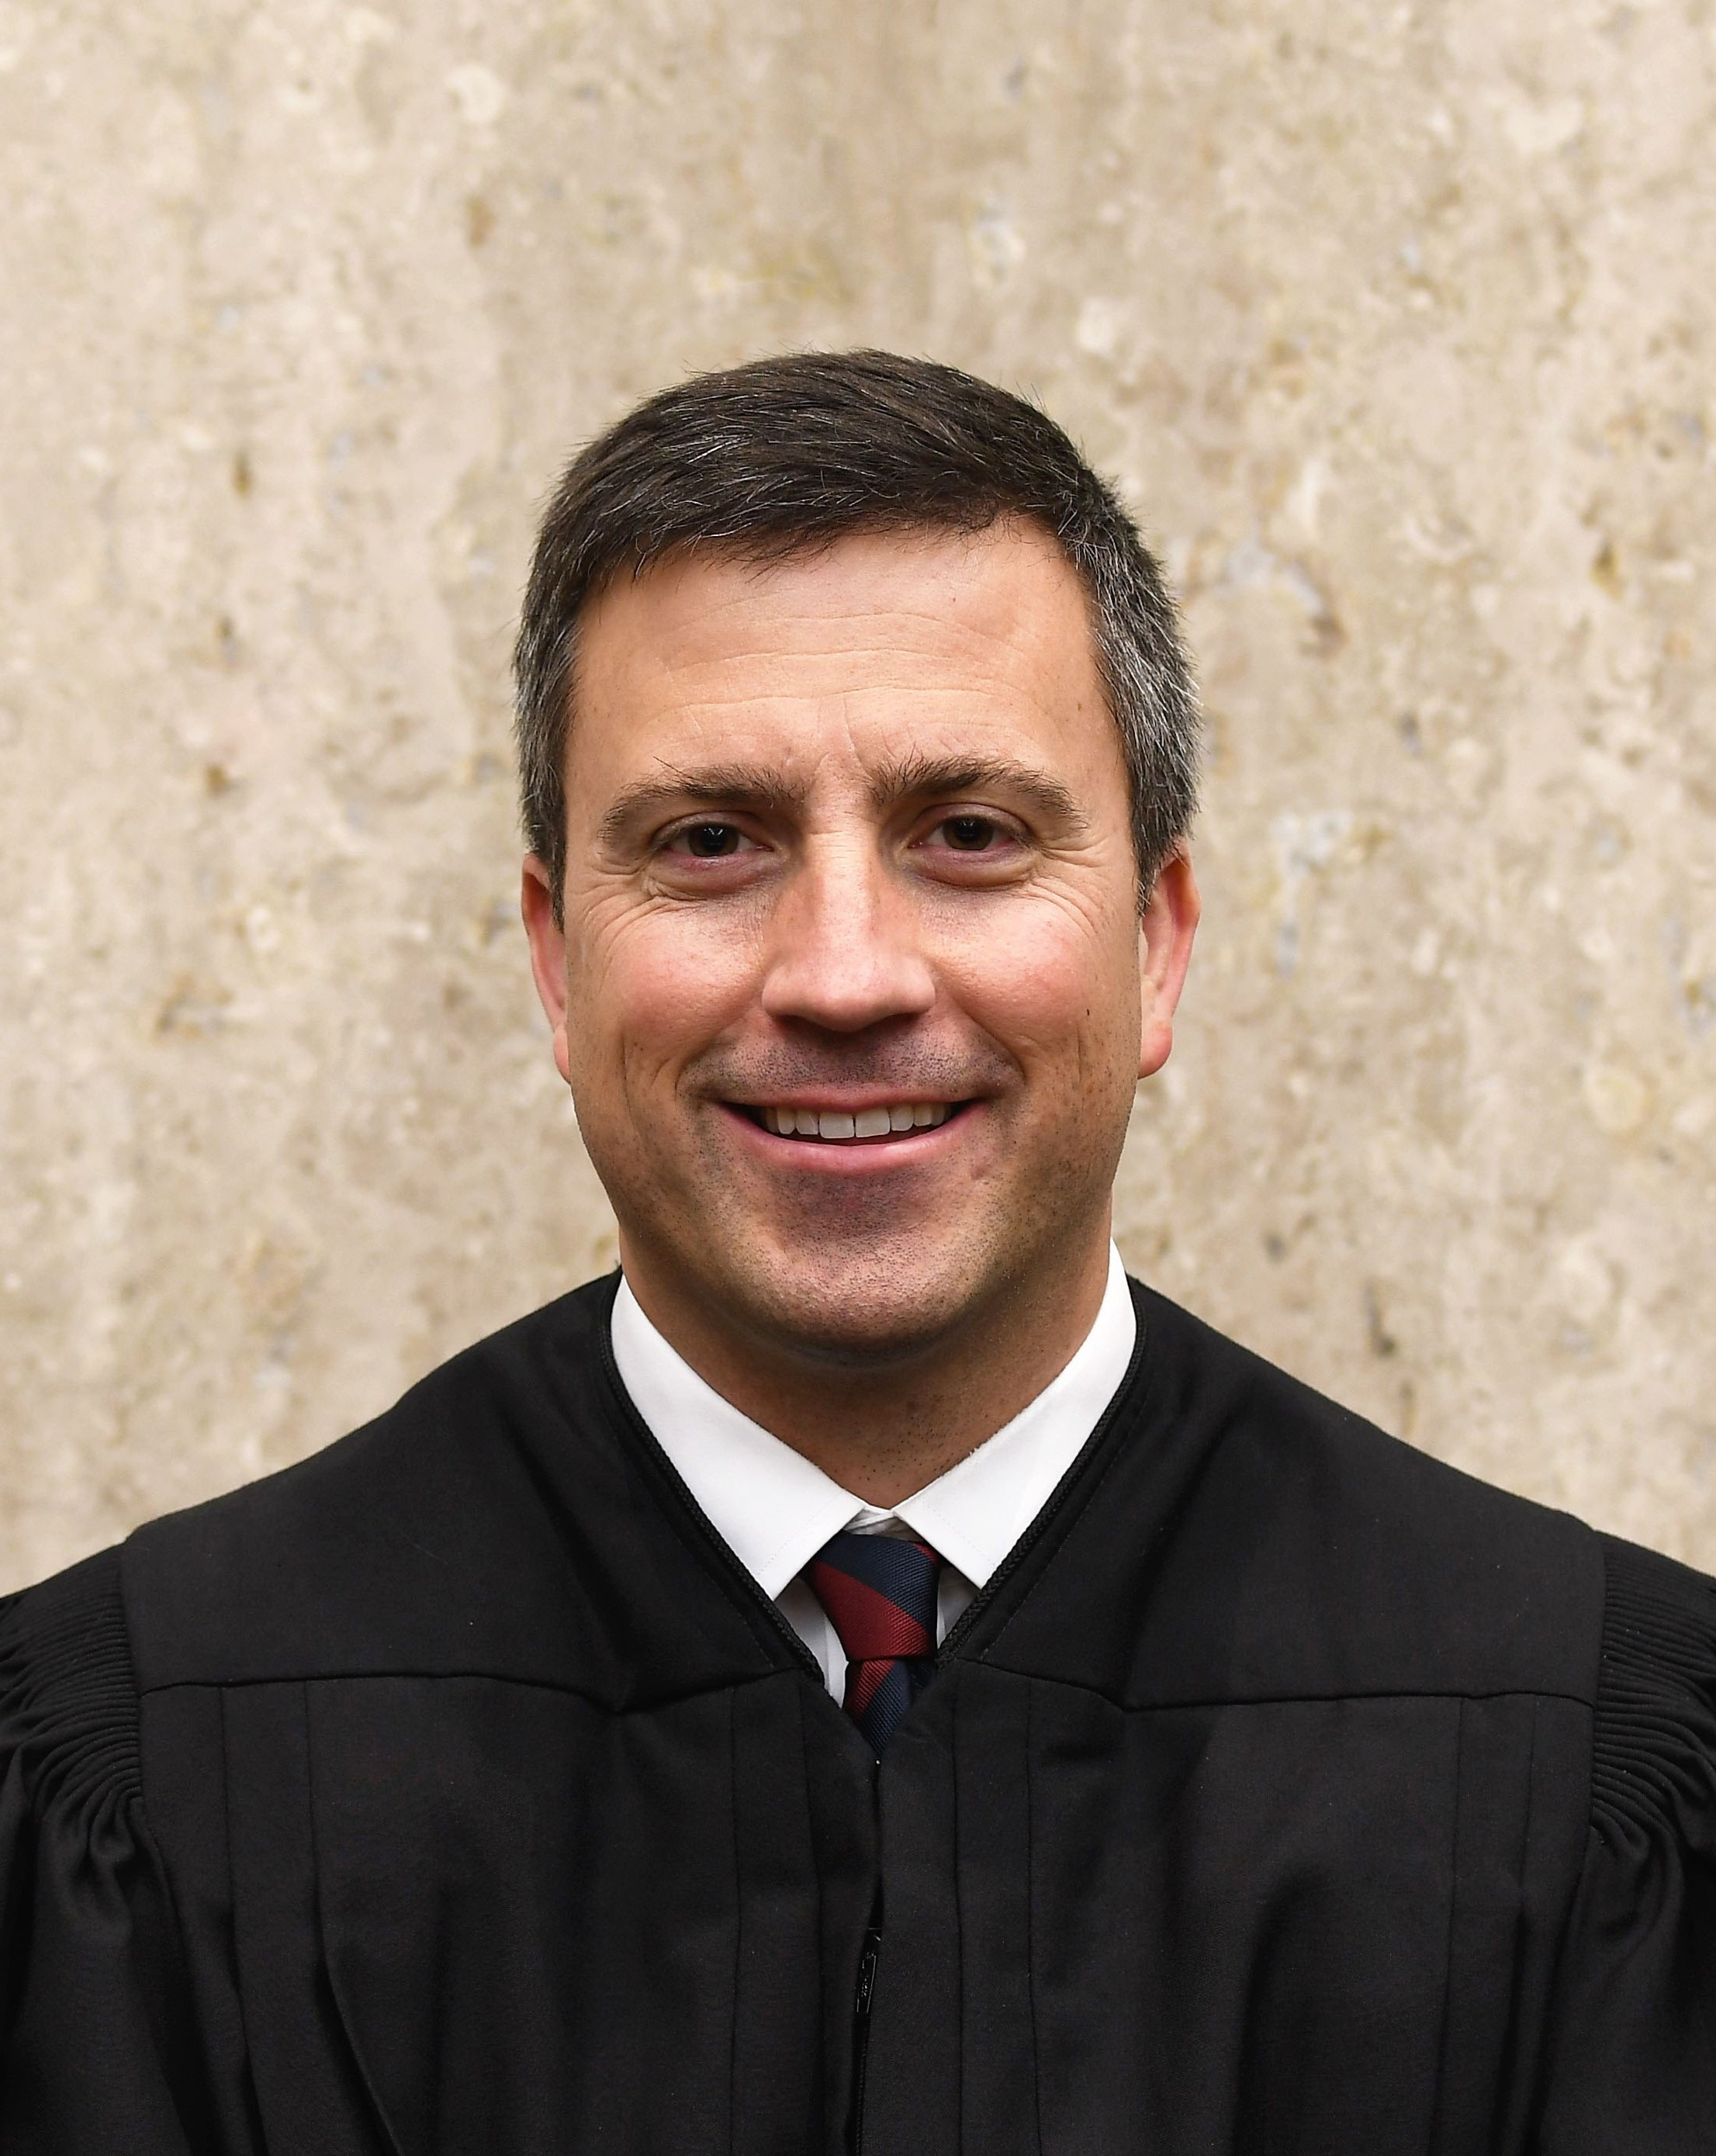 District Judge Trevor N. McFadden